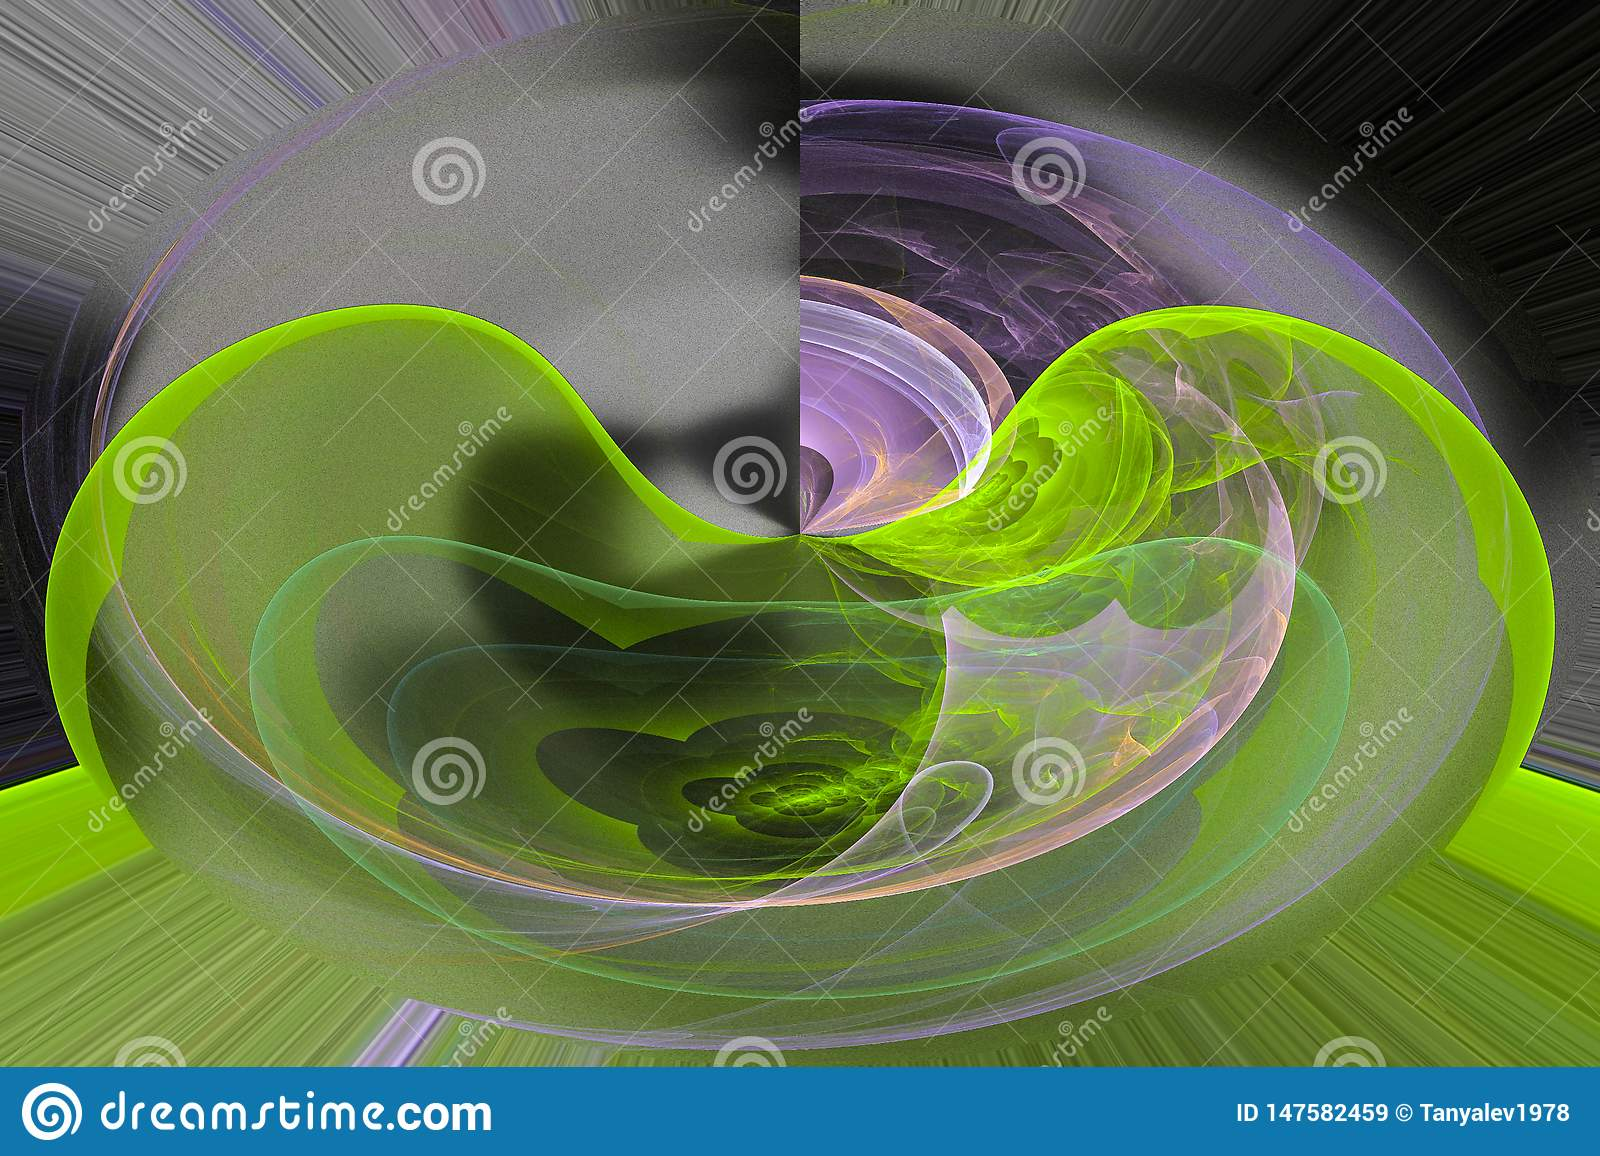 Fantasy, fractal, creative space pattern vibrant colorful , glow firework modern background, energy templaterendering